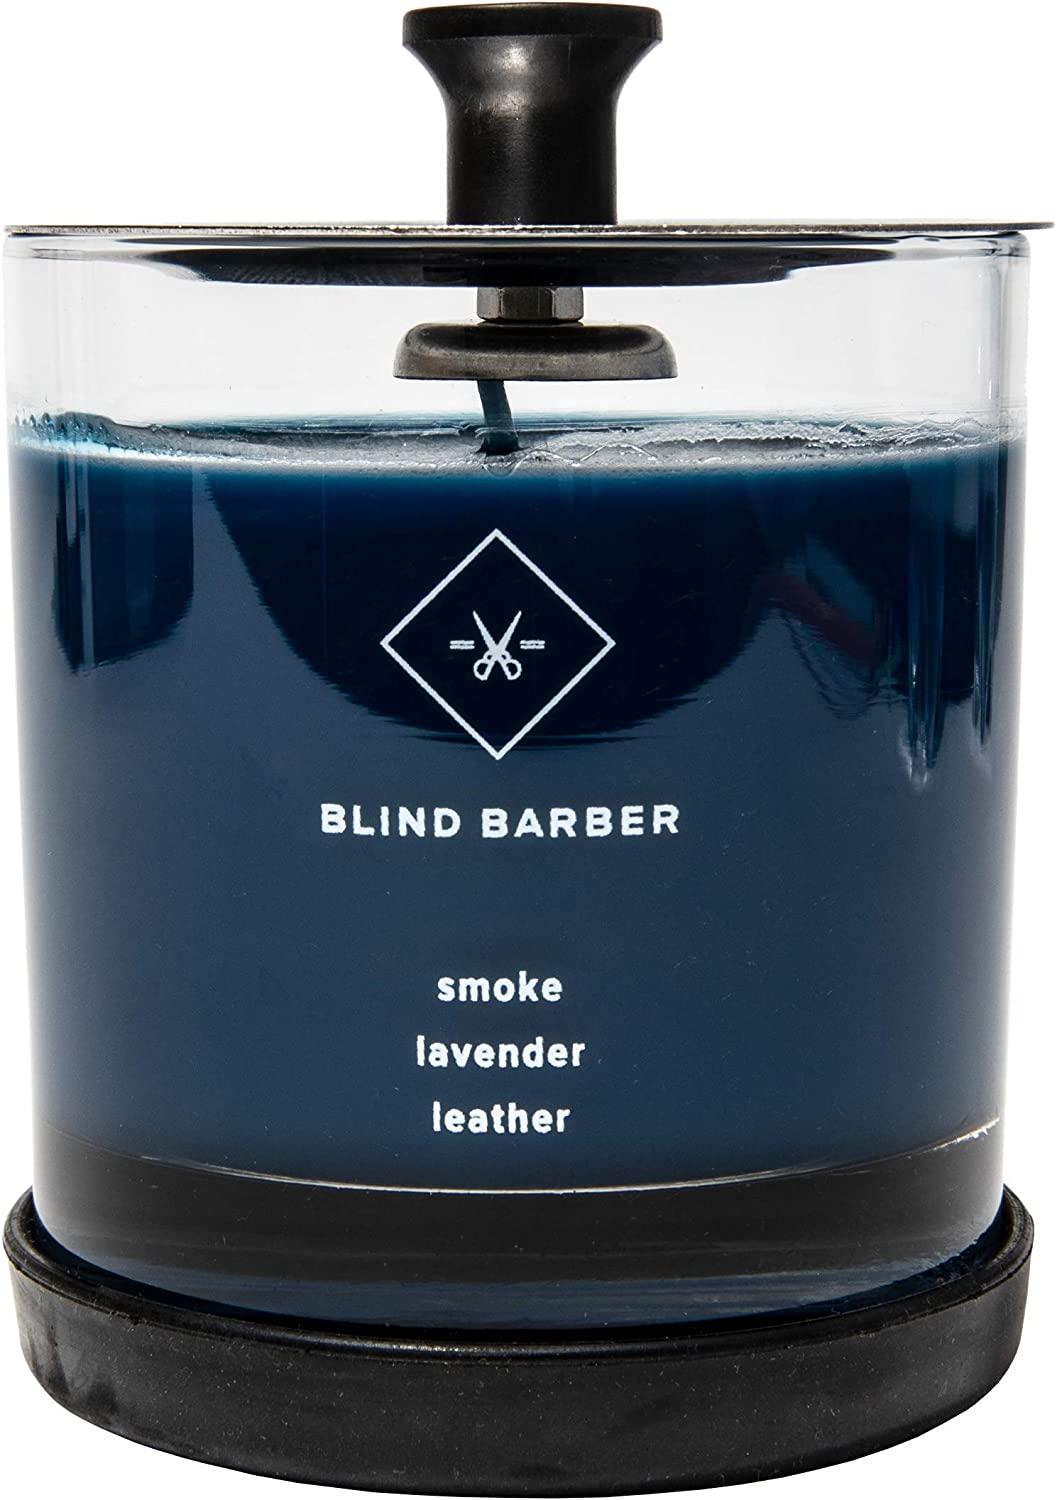 6.2 Ounce Natural Soy Wax with 40 Hour Burn Time Blind Barber Tompkins Scented Candle Smoke /& Lavender Scent for Men /& Women Leather